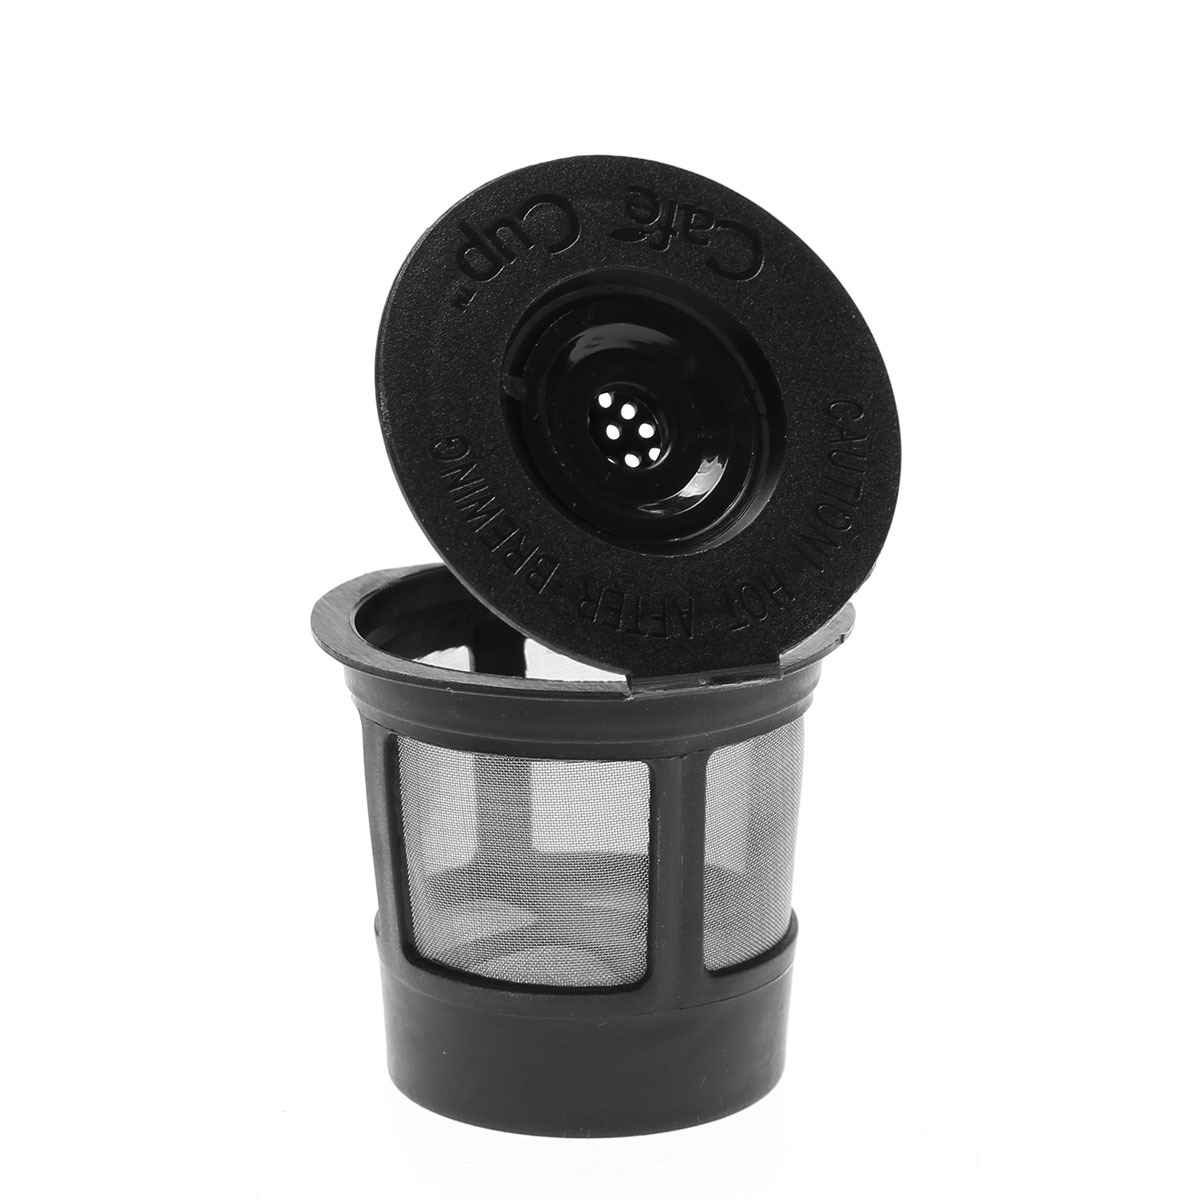 One Cup Coffee Maker With Reusable Filter : 6 Reusable Coffee Single Solo K-Cup + 1 Spoon For Keurig Replacements Filter Pod eBay